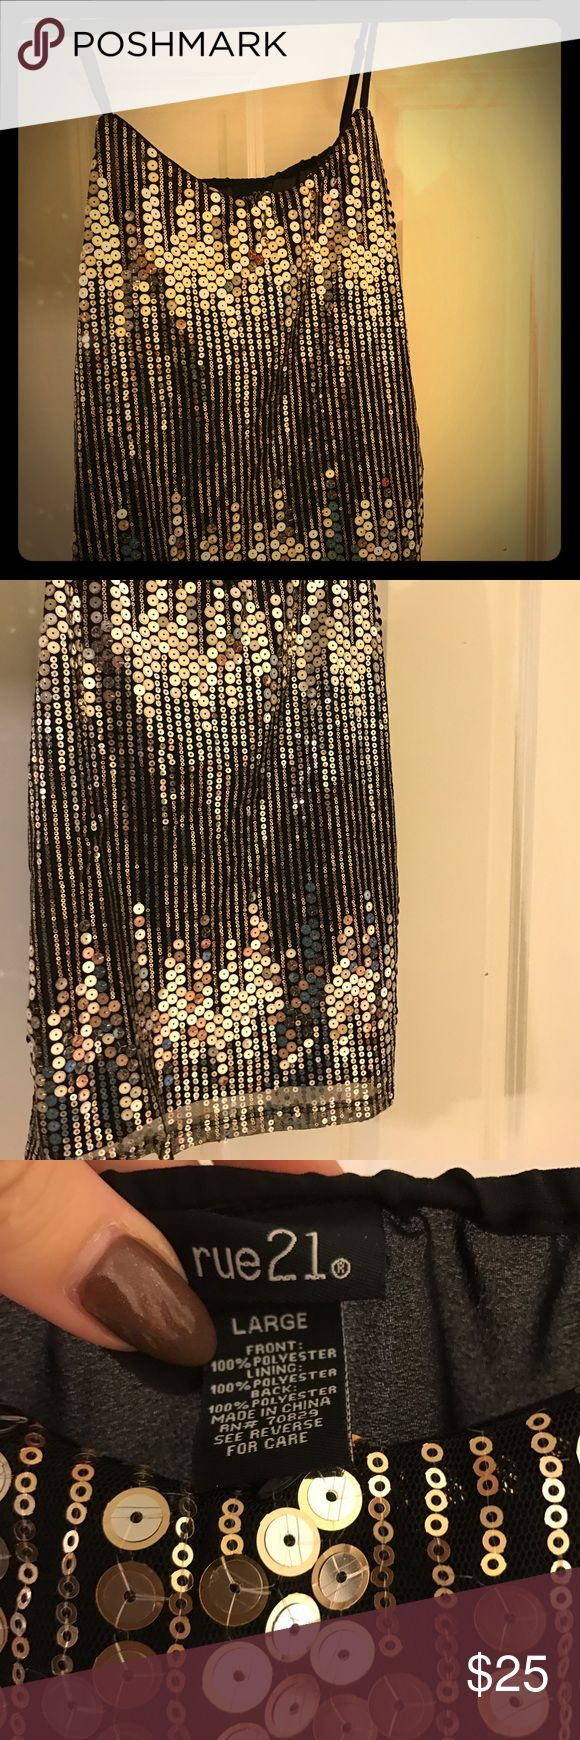 Gorgeous Gold Sequin Top Beautiful black tank top with gold sequin overlay. Sheer back but fully covered front. Never worn. Super comfortable and perfect for nights out! Rue21 Tops Blouses